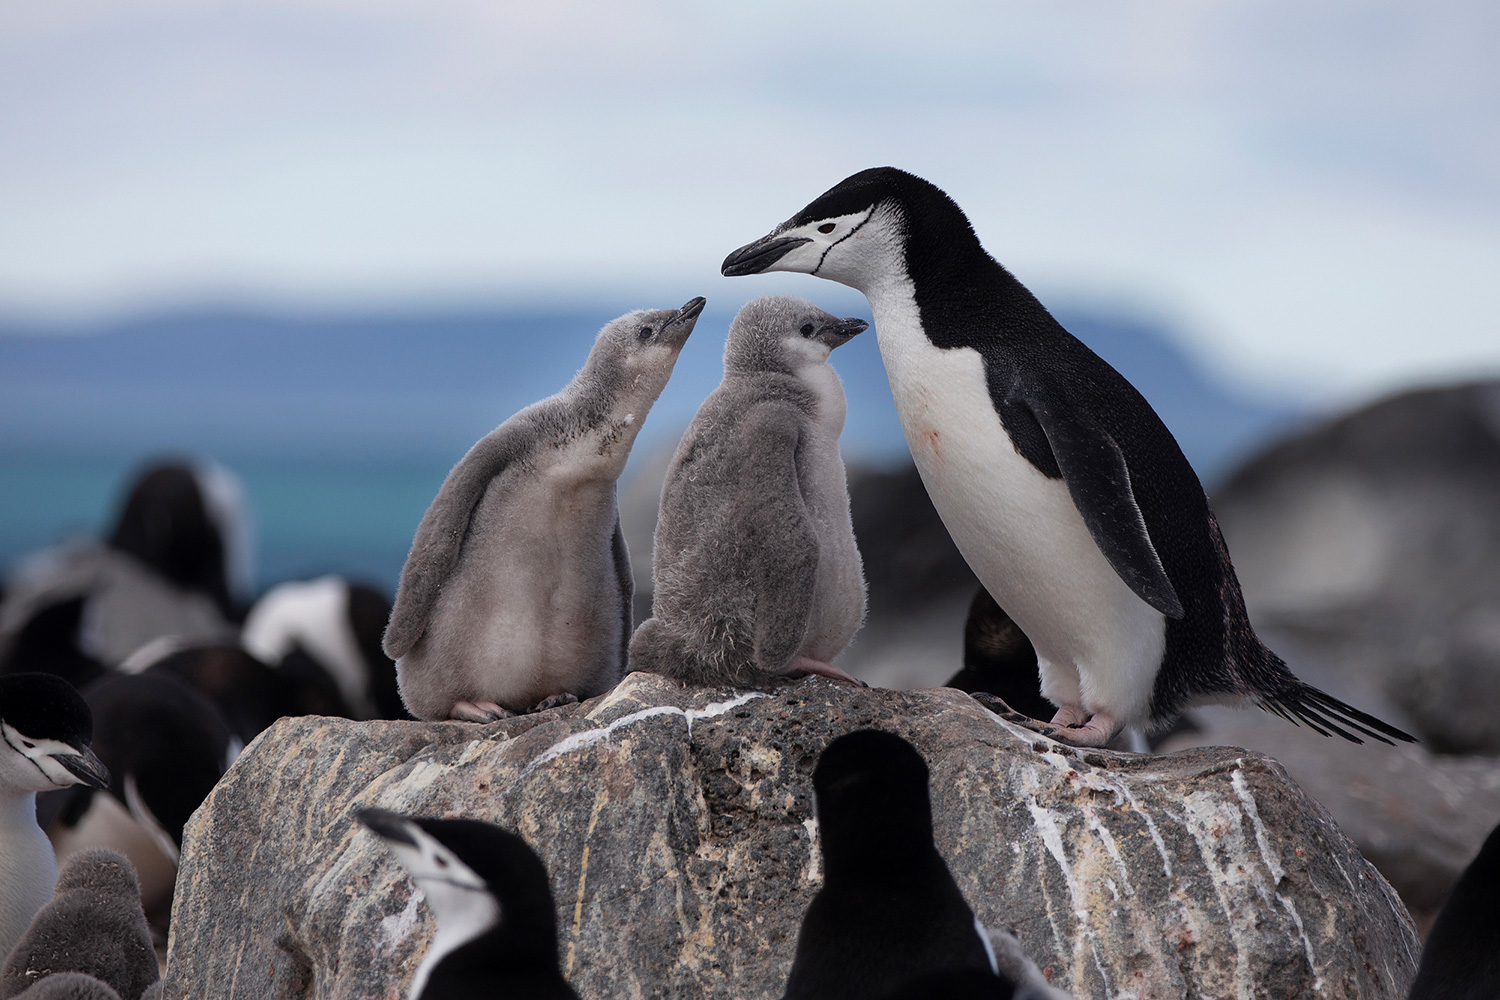 A Chinstrap Penguin colony on Penguin Island. Greenpeace is back in the Antarctic on the last stage of the Pole to Pole Expedition. We have teamed up with a group of scientists to investigate and document the impacts the climate crisis is already having in this area. *This picture were taken in 2020 during the Antarctic leg of the Pole to Pole expedition under the Dutch permit number RWS-2019/40813.